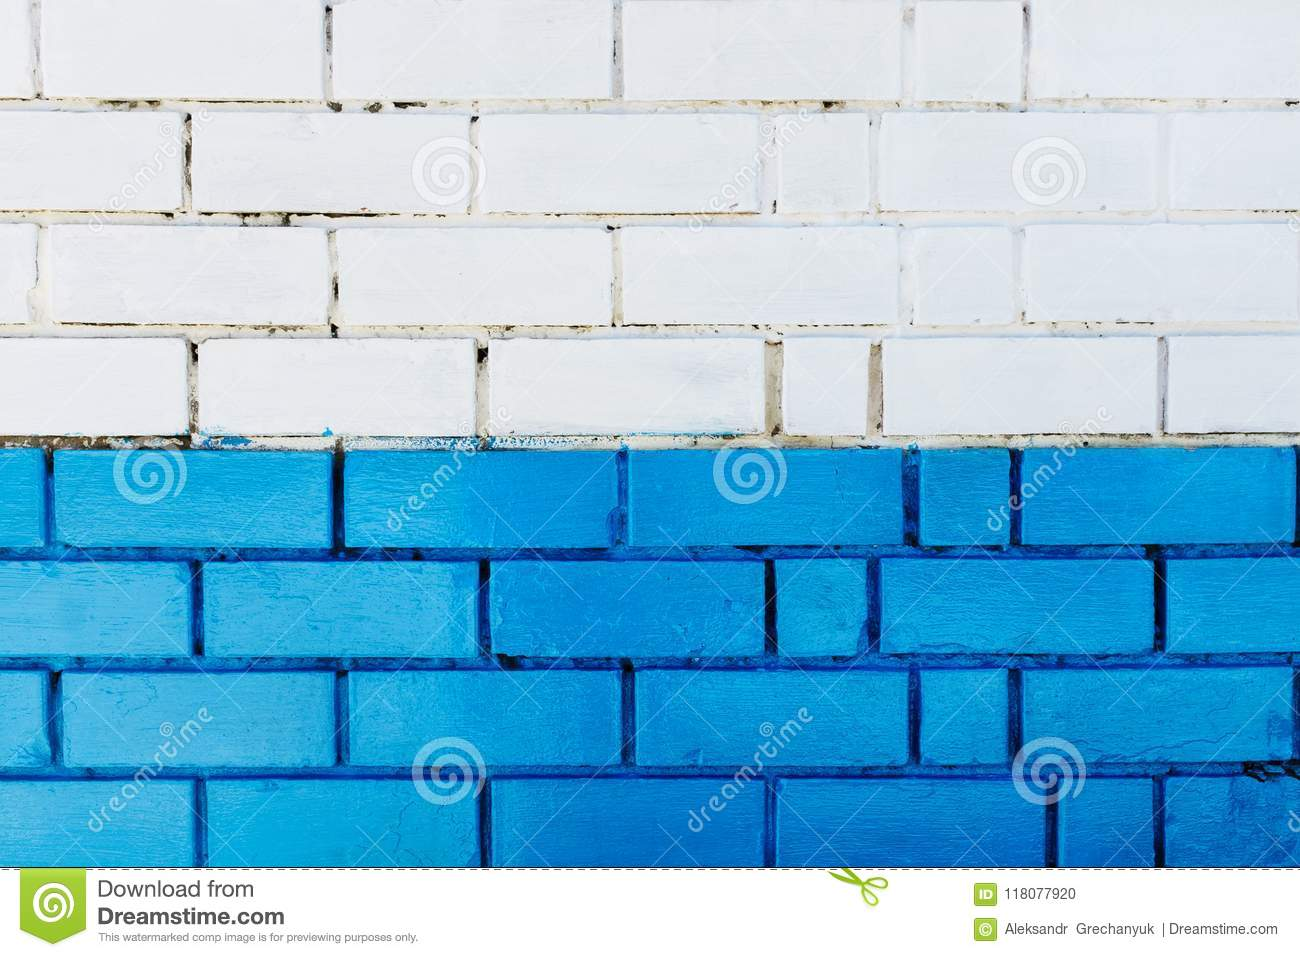 Abstract Vertical Modern Square White Brick Tile Wall Texture